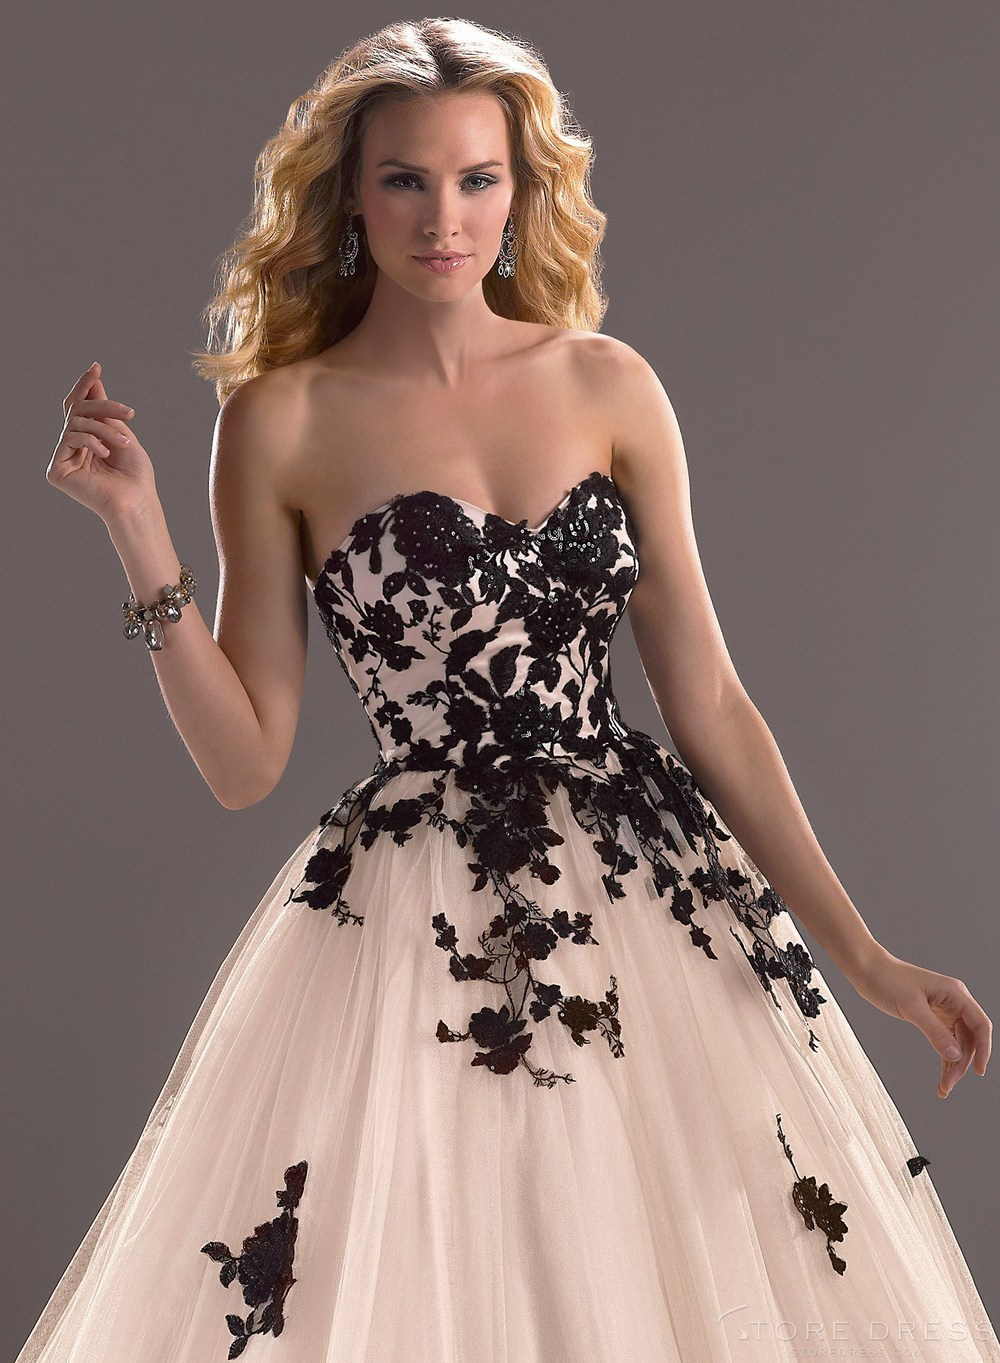 Fine Wedding Gowns With Black Accents Collection - Wedding Dress ...